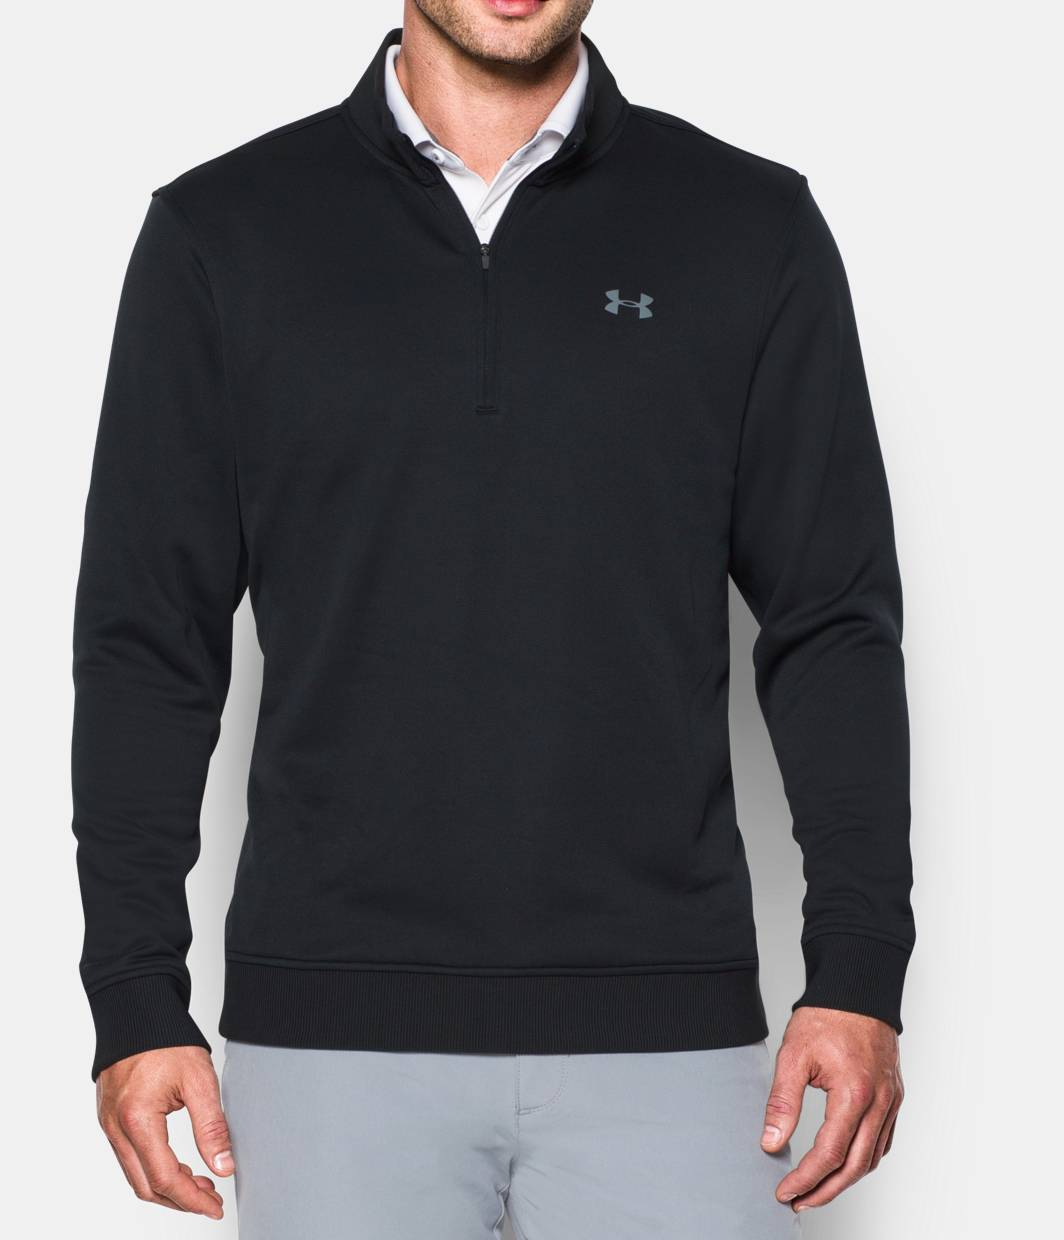 Black t shirt under button down - Best Seller Men S Ua Storm Sweaterfleece Zip 4 Colors 69 99